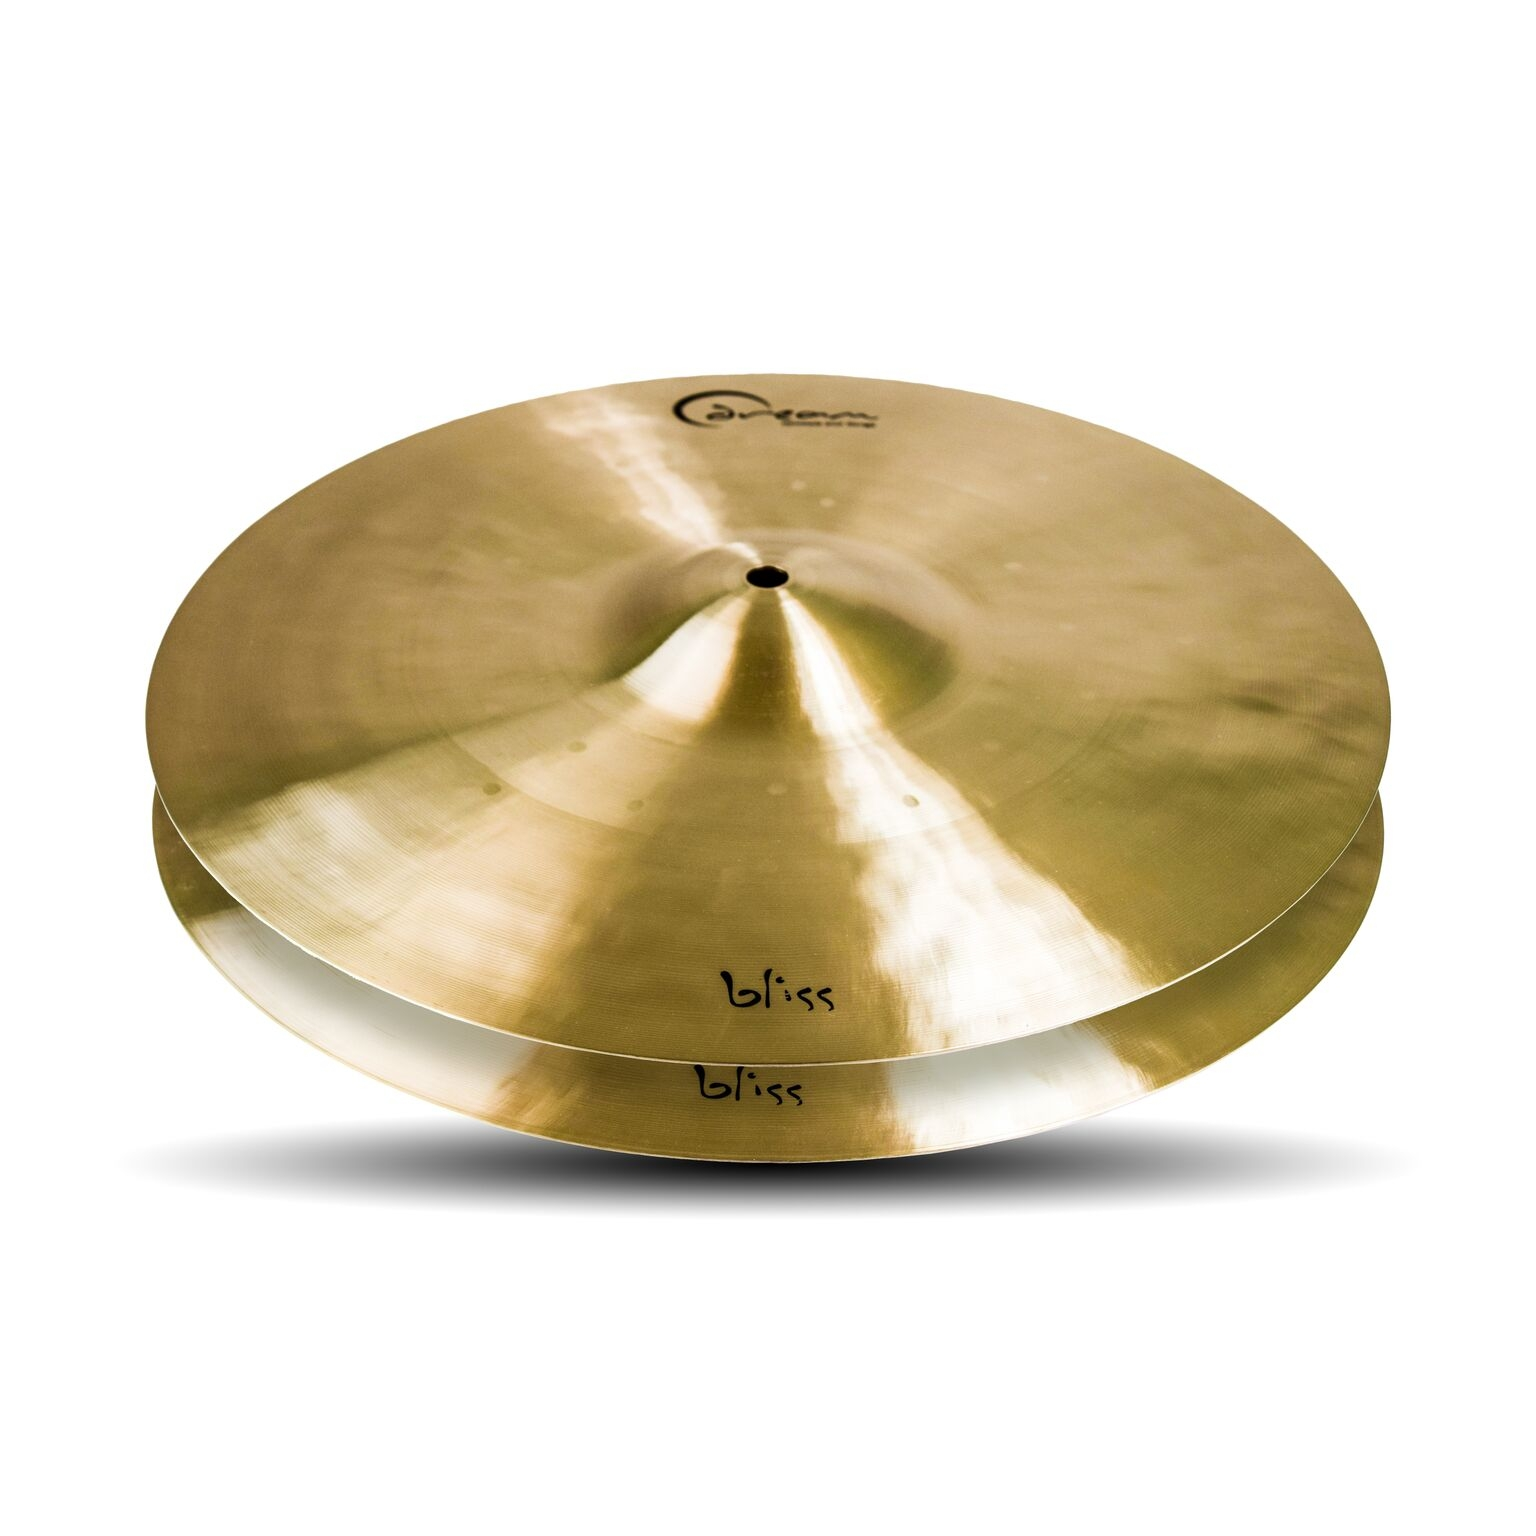 "Dream Cymbals Bliss Series 15"" Hihat"